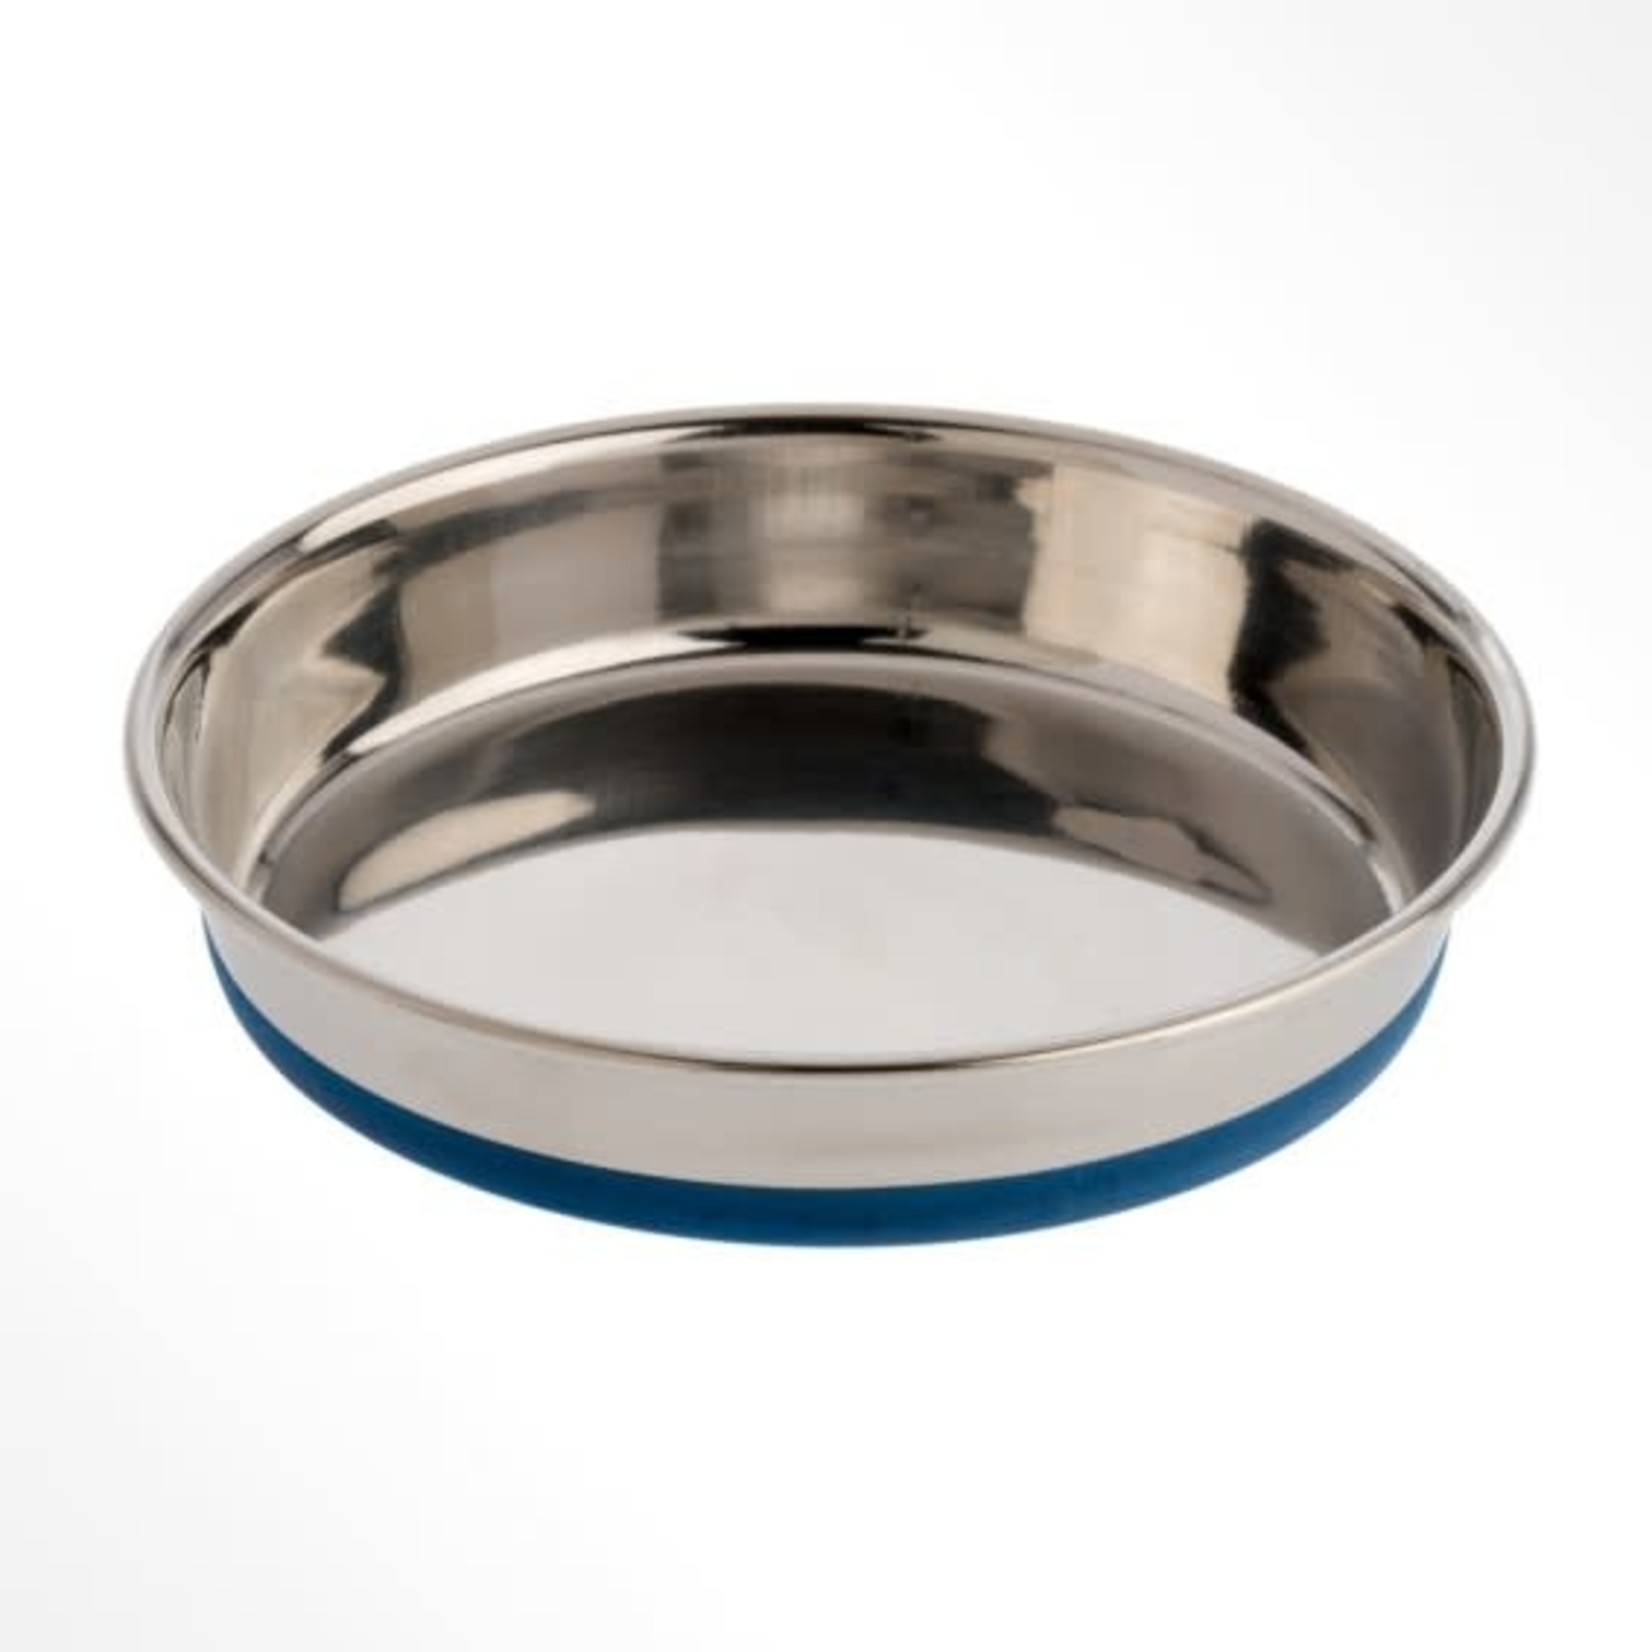 Our Pets Company Durapet Stainless Steel Bowl Cat Dish 16 OZ